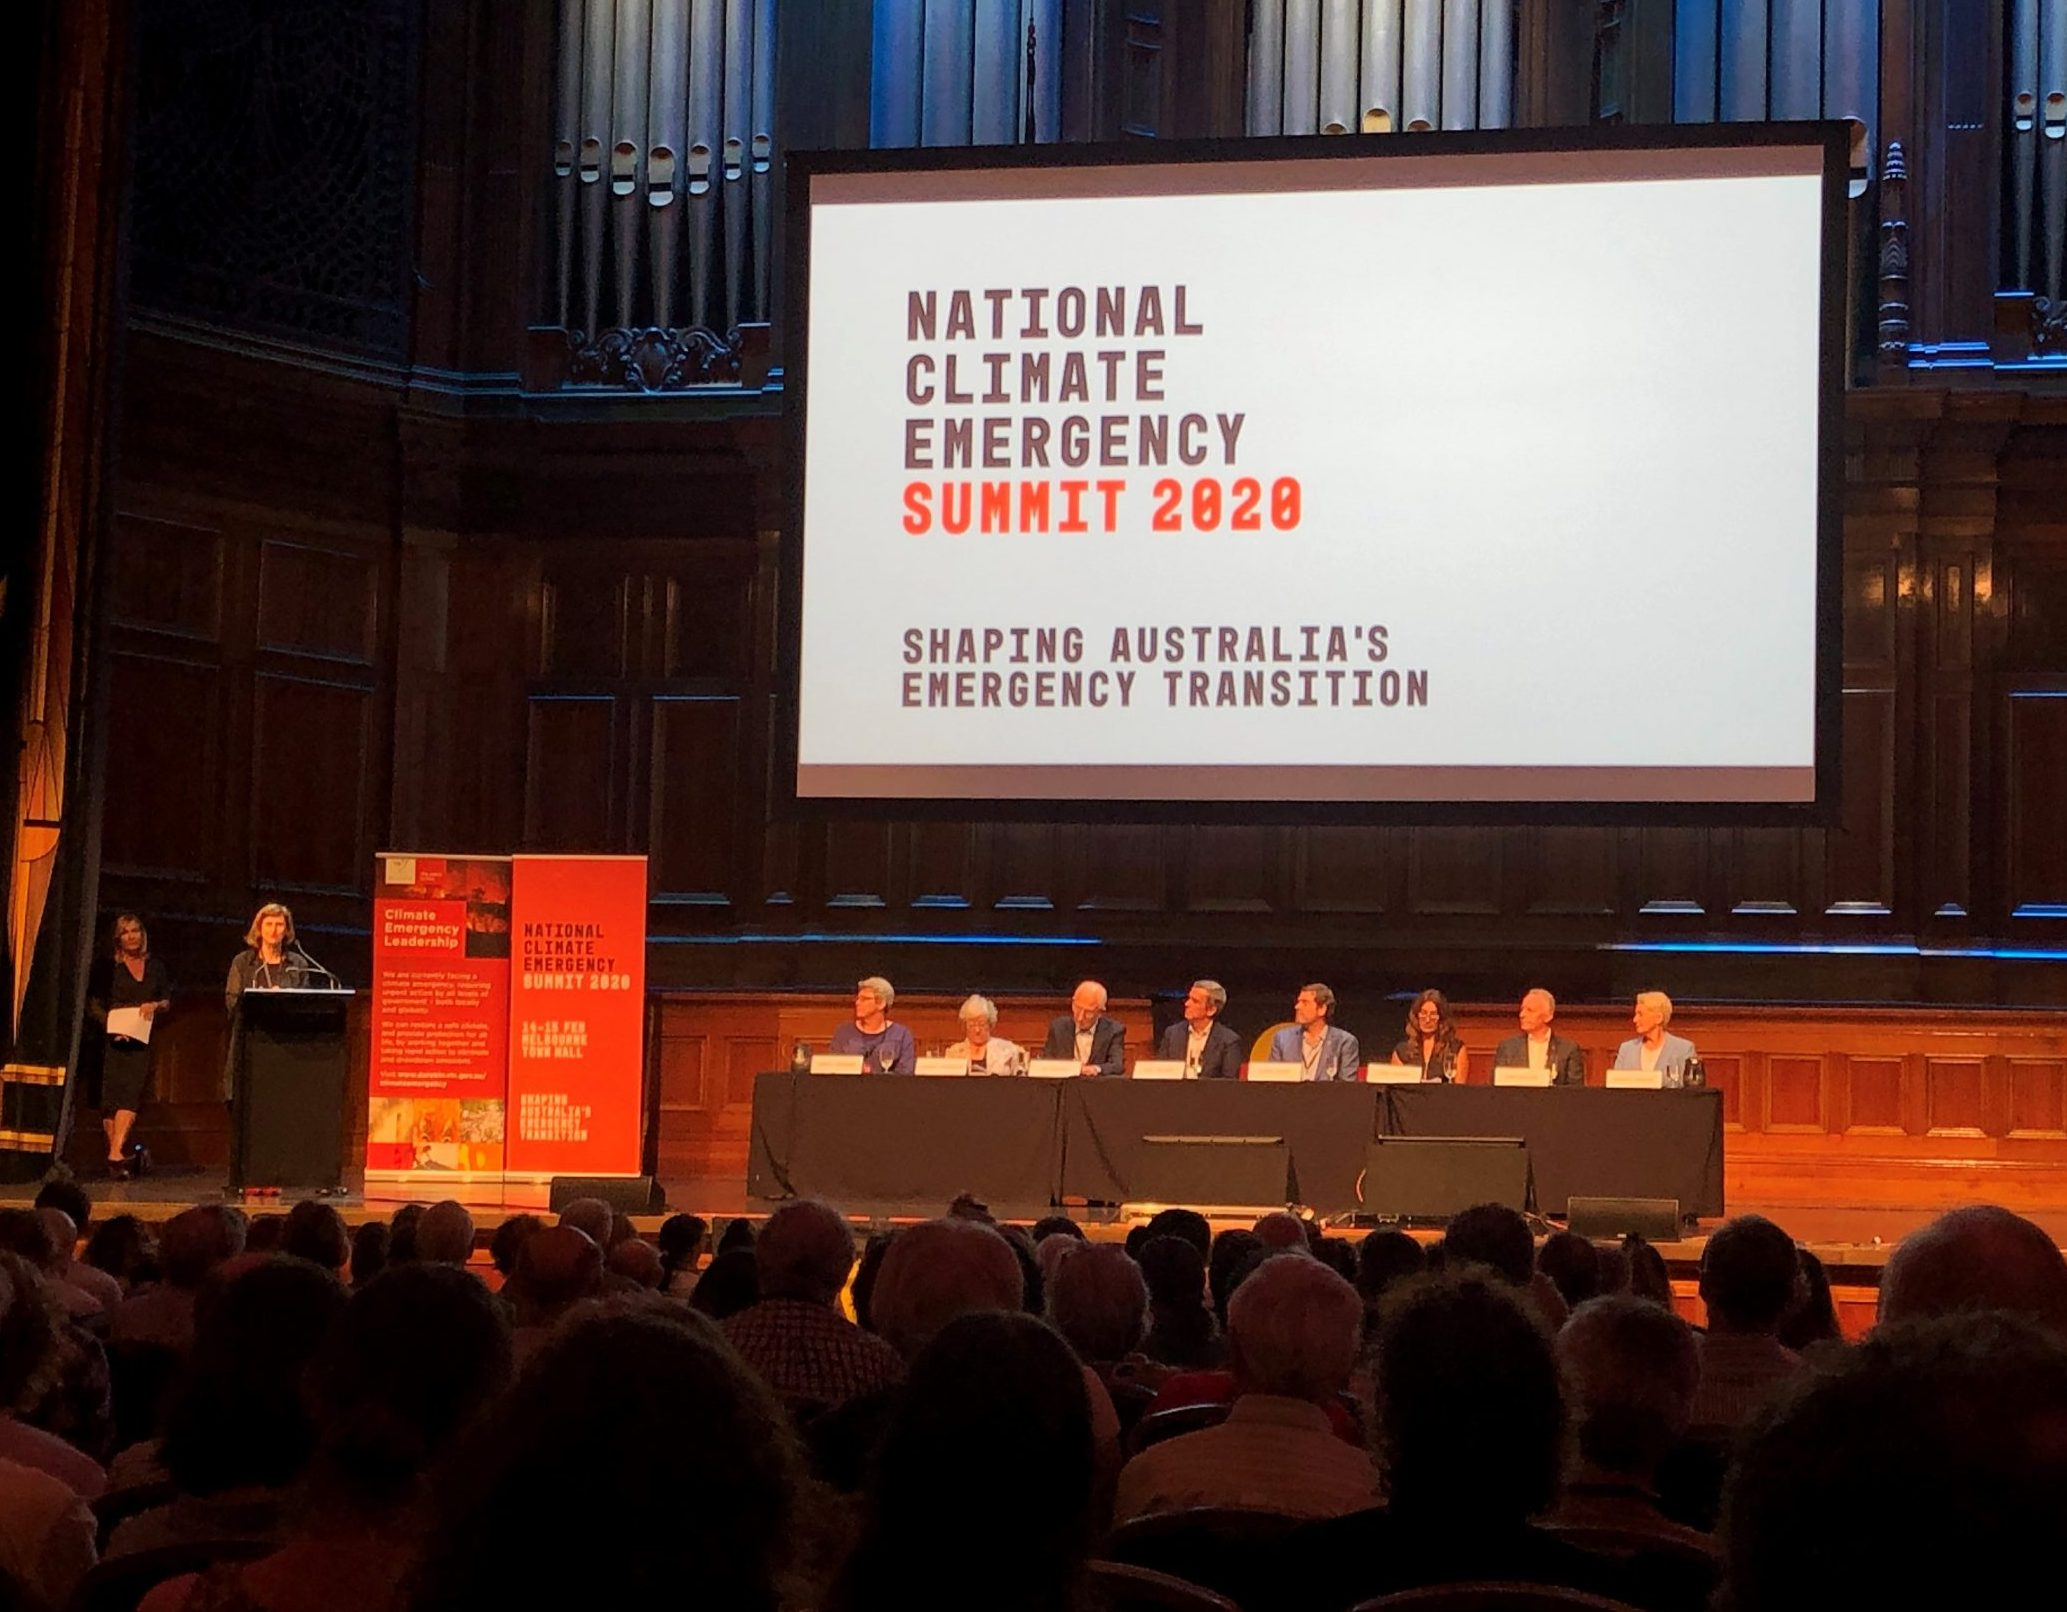 Attending the National Climate Emergency Summit